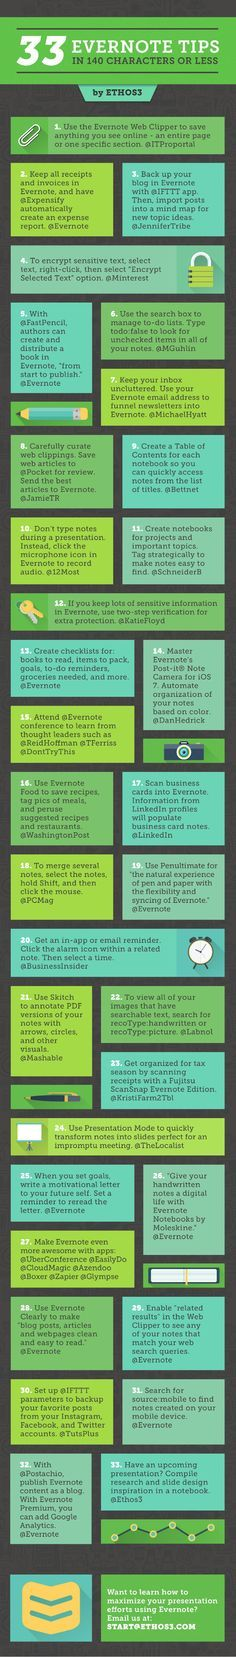 33 Evernote tips #infographic